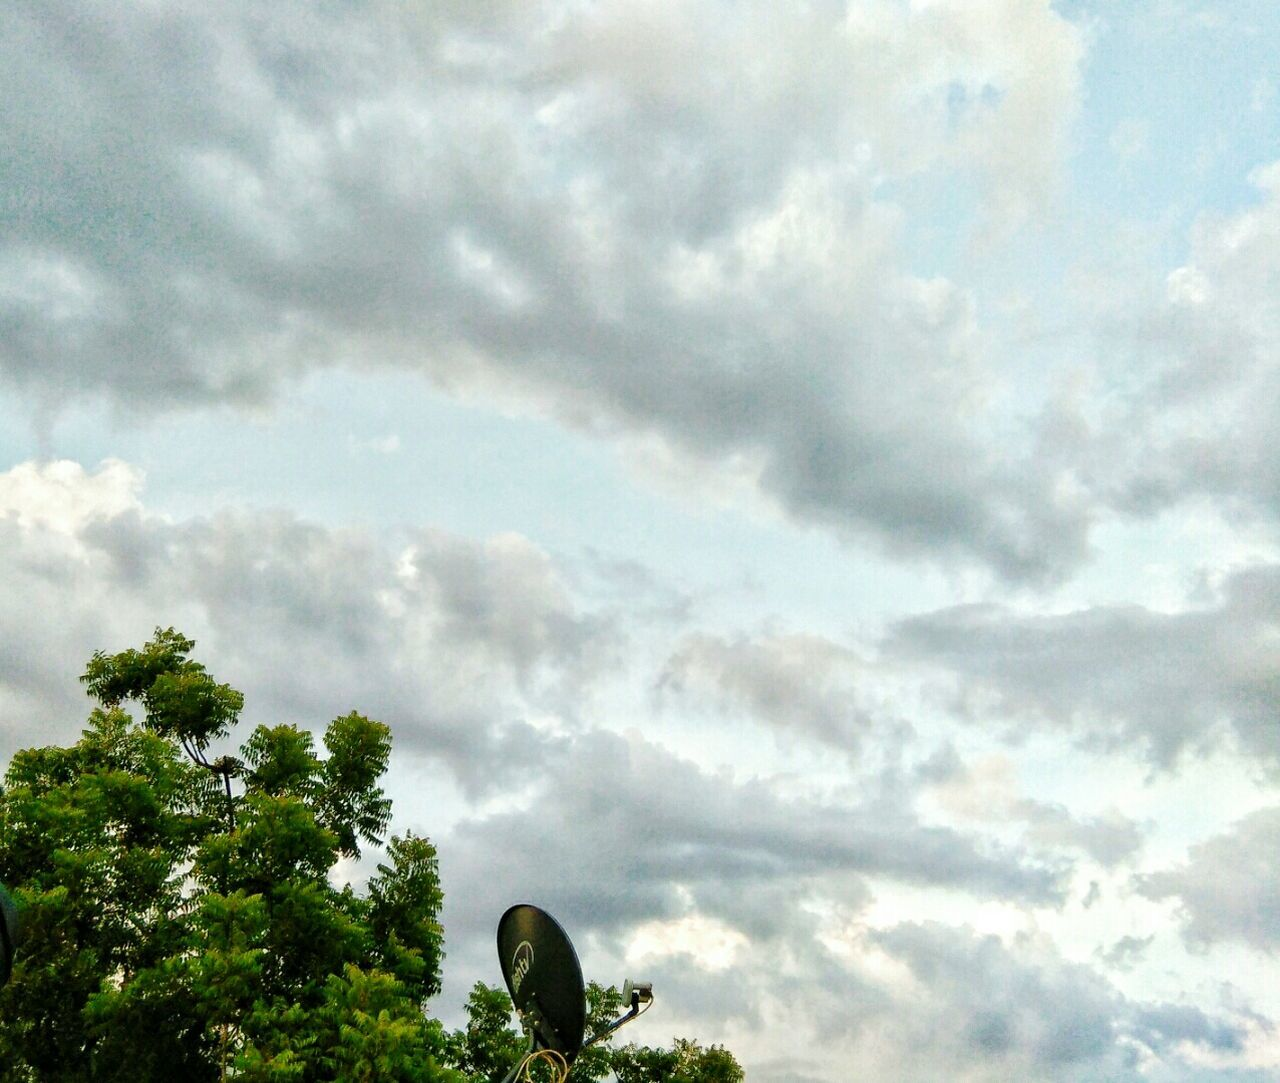 cloud - sky, sky, tree, low angle view, nature, day, no people, beauty in nature, outdoors, growth, scenics, animal themes